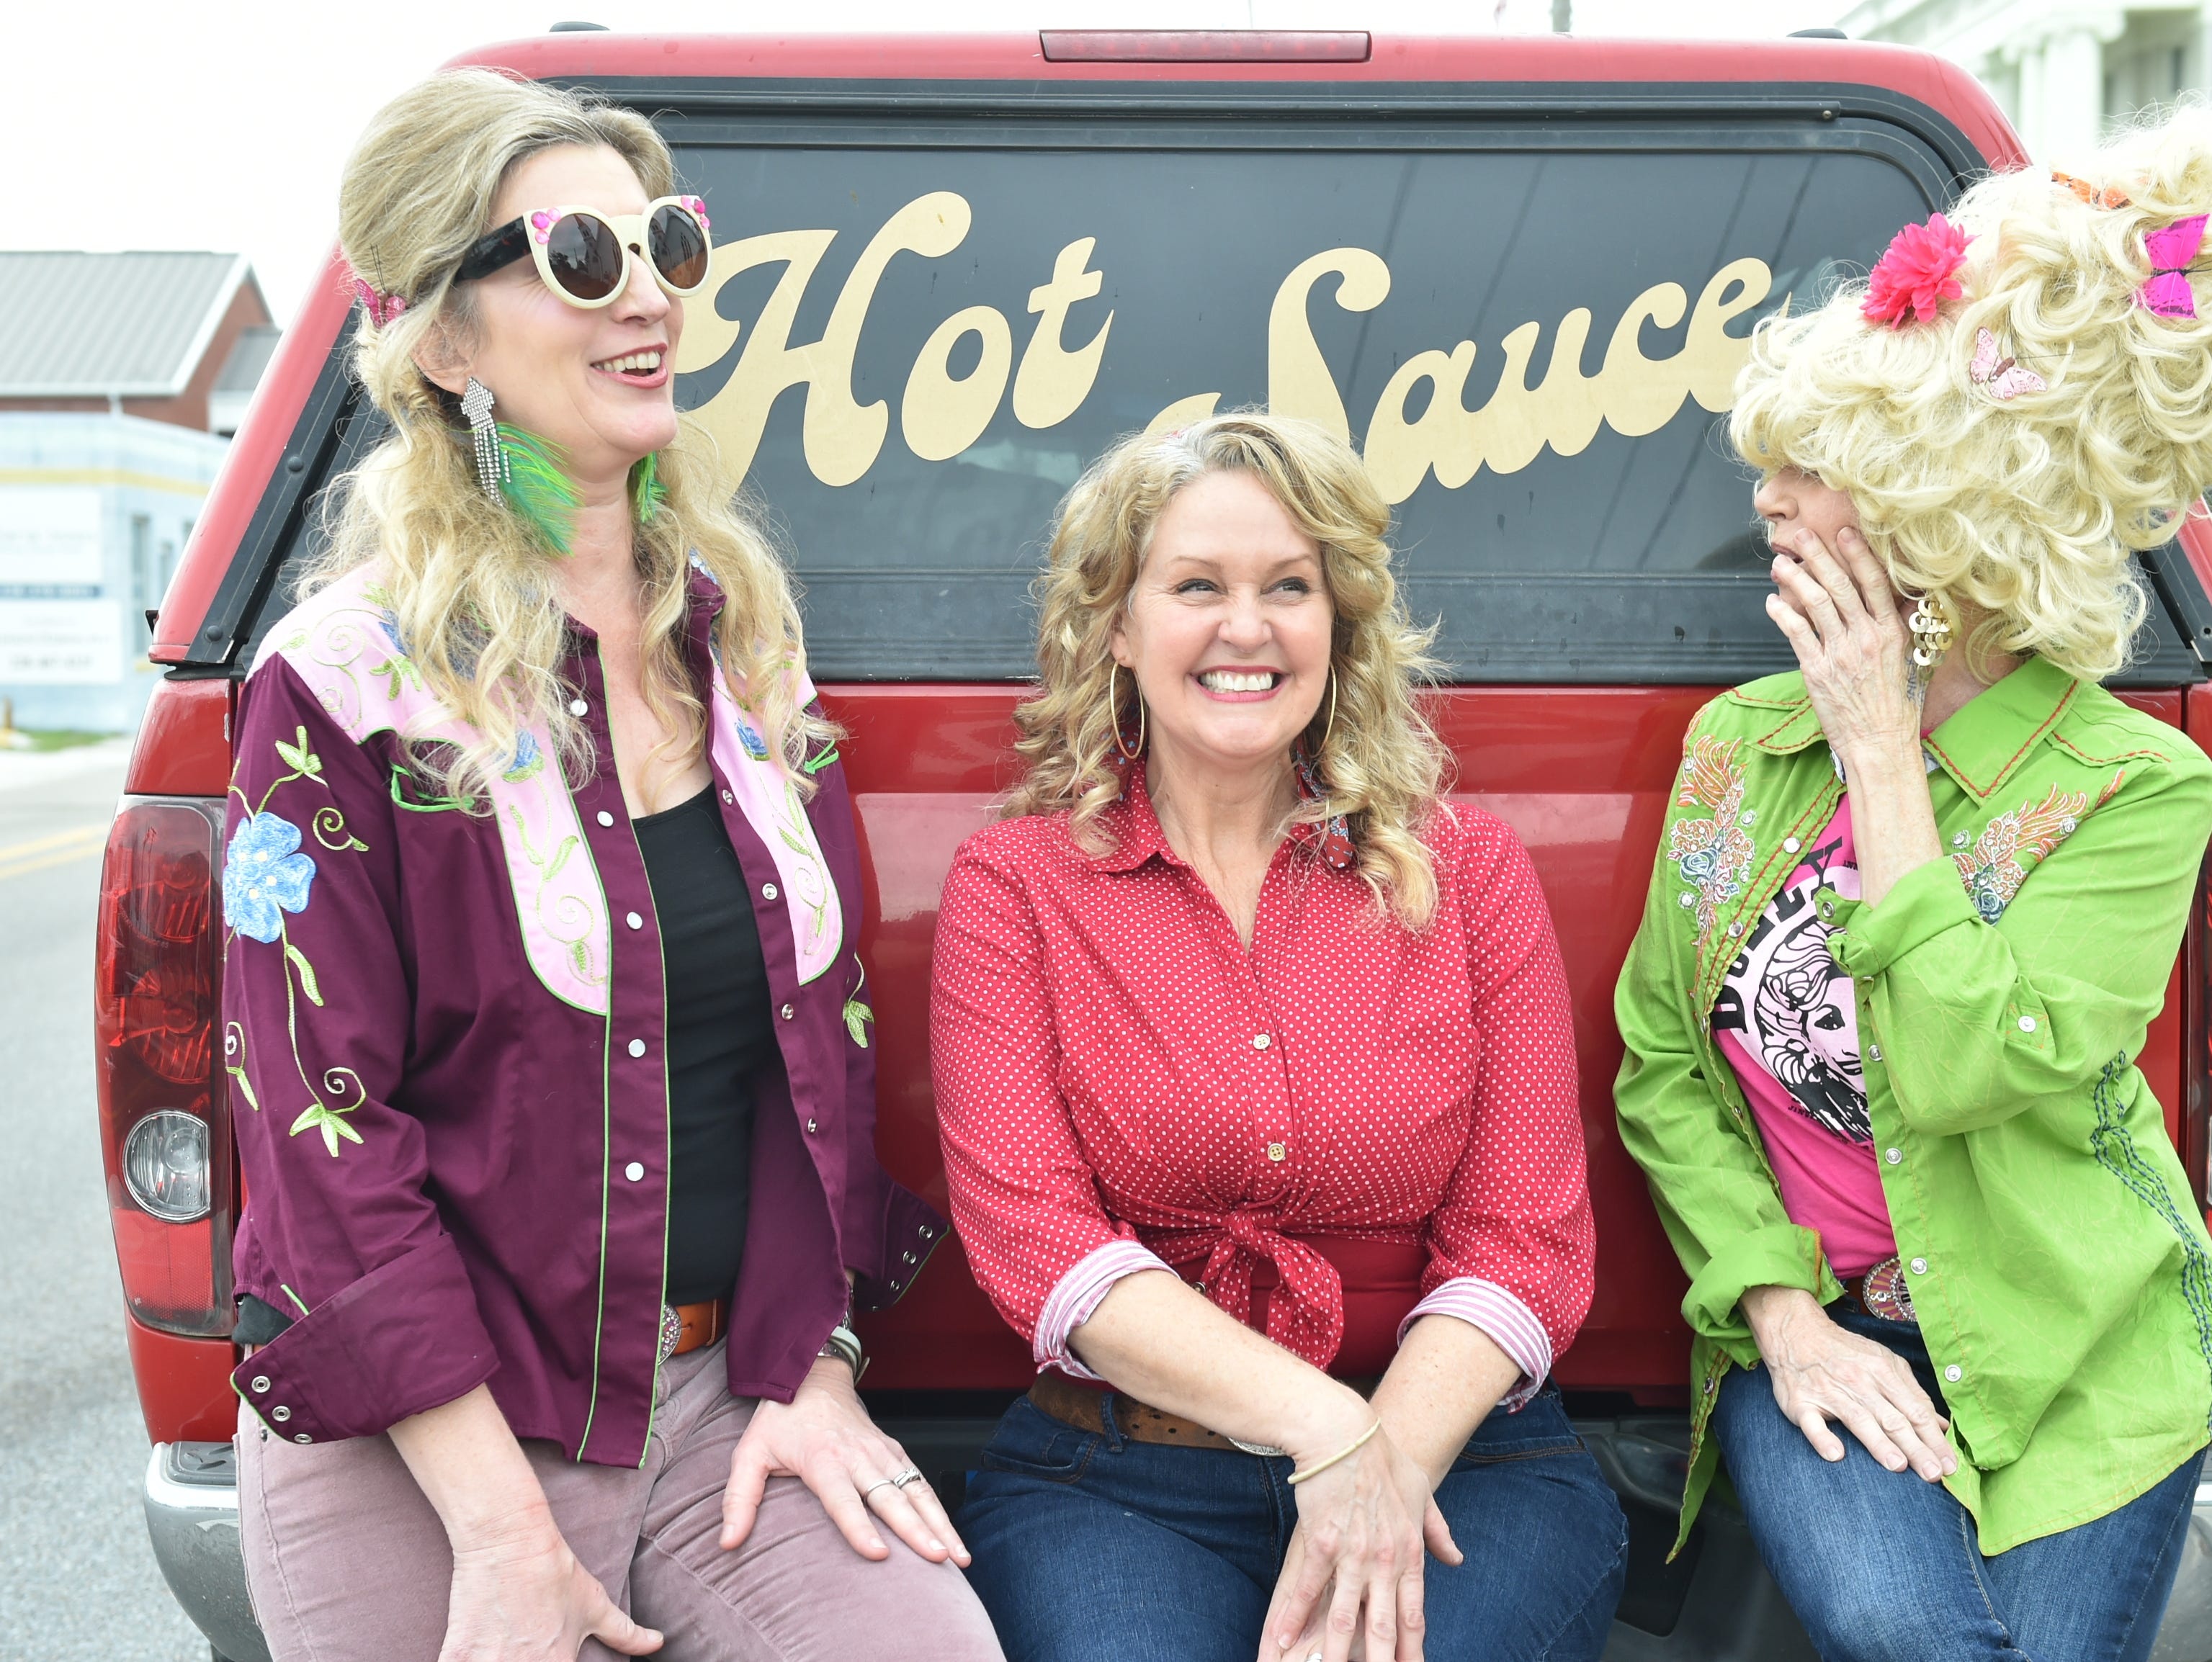 Artists and Dolly Should festival runners Ann Madden, Alicein Schwabacher and Sandy Maggio hangout on the bumper of a truck during the 4th annual Dolly Should festival-a Dolly Parton-themed event. The hope is Parton will come visit Bay St. Louis. Saturday, Jan. 12, 2019.